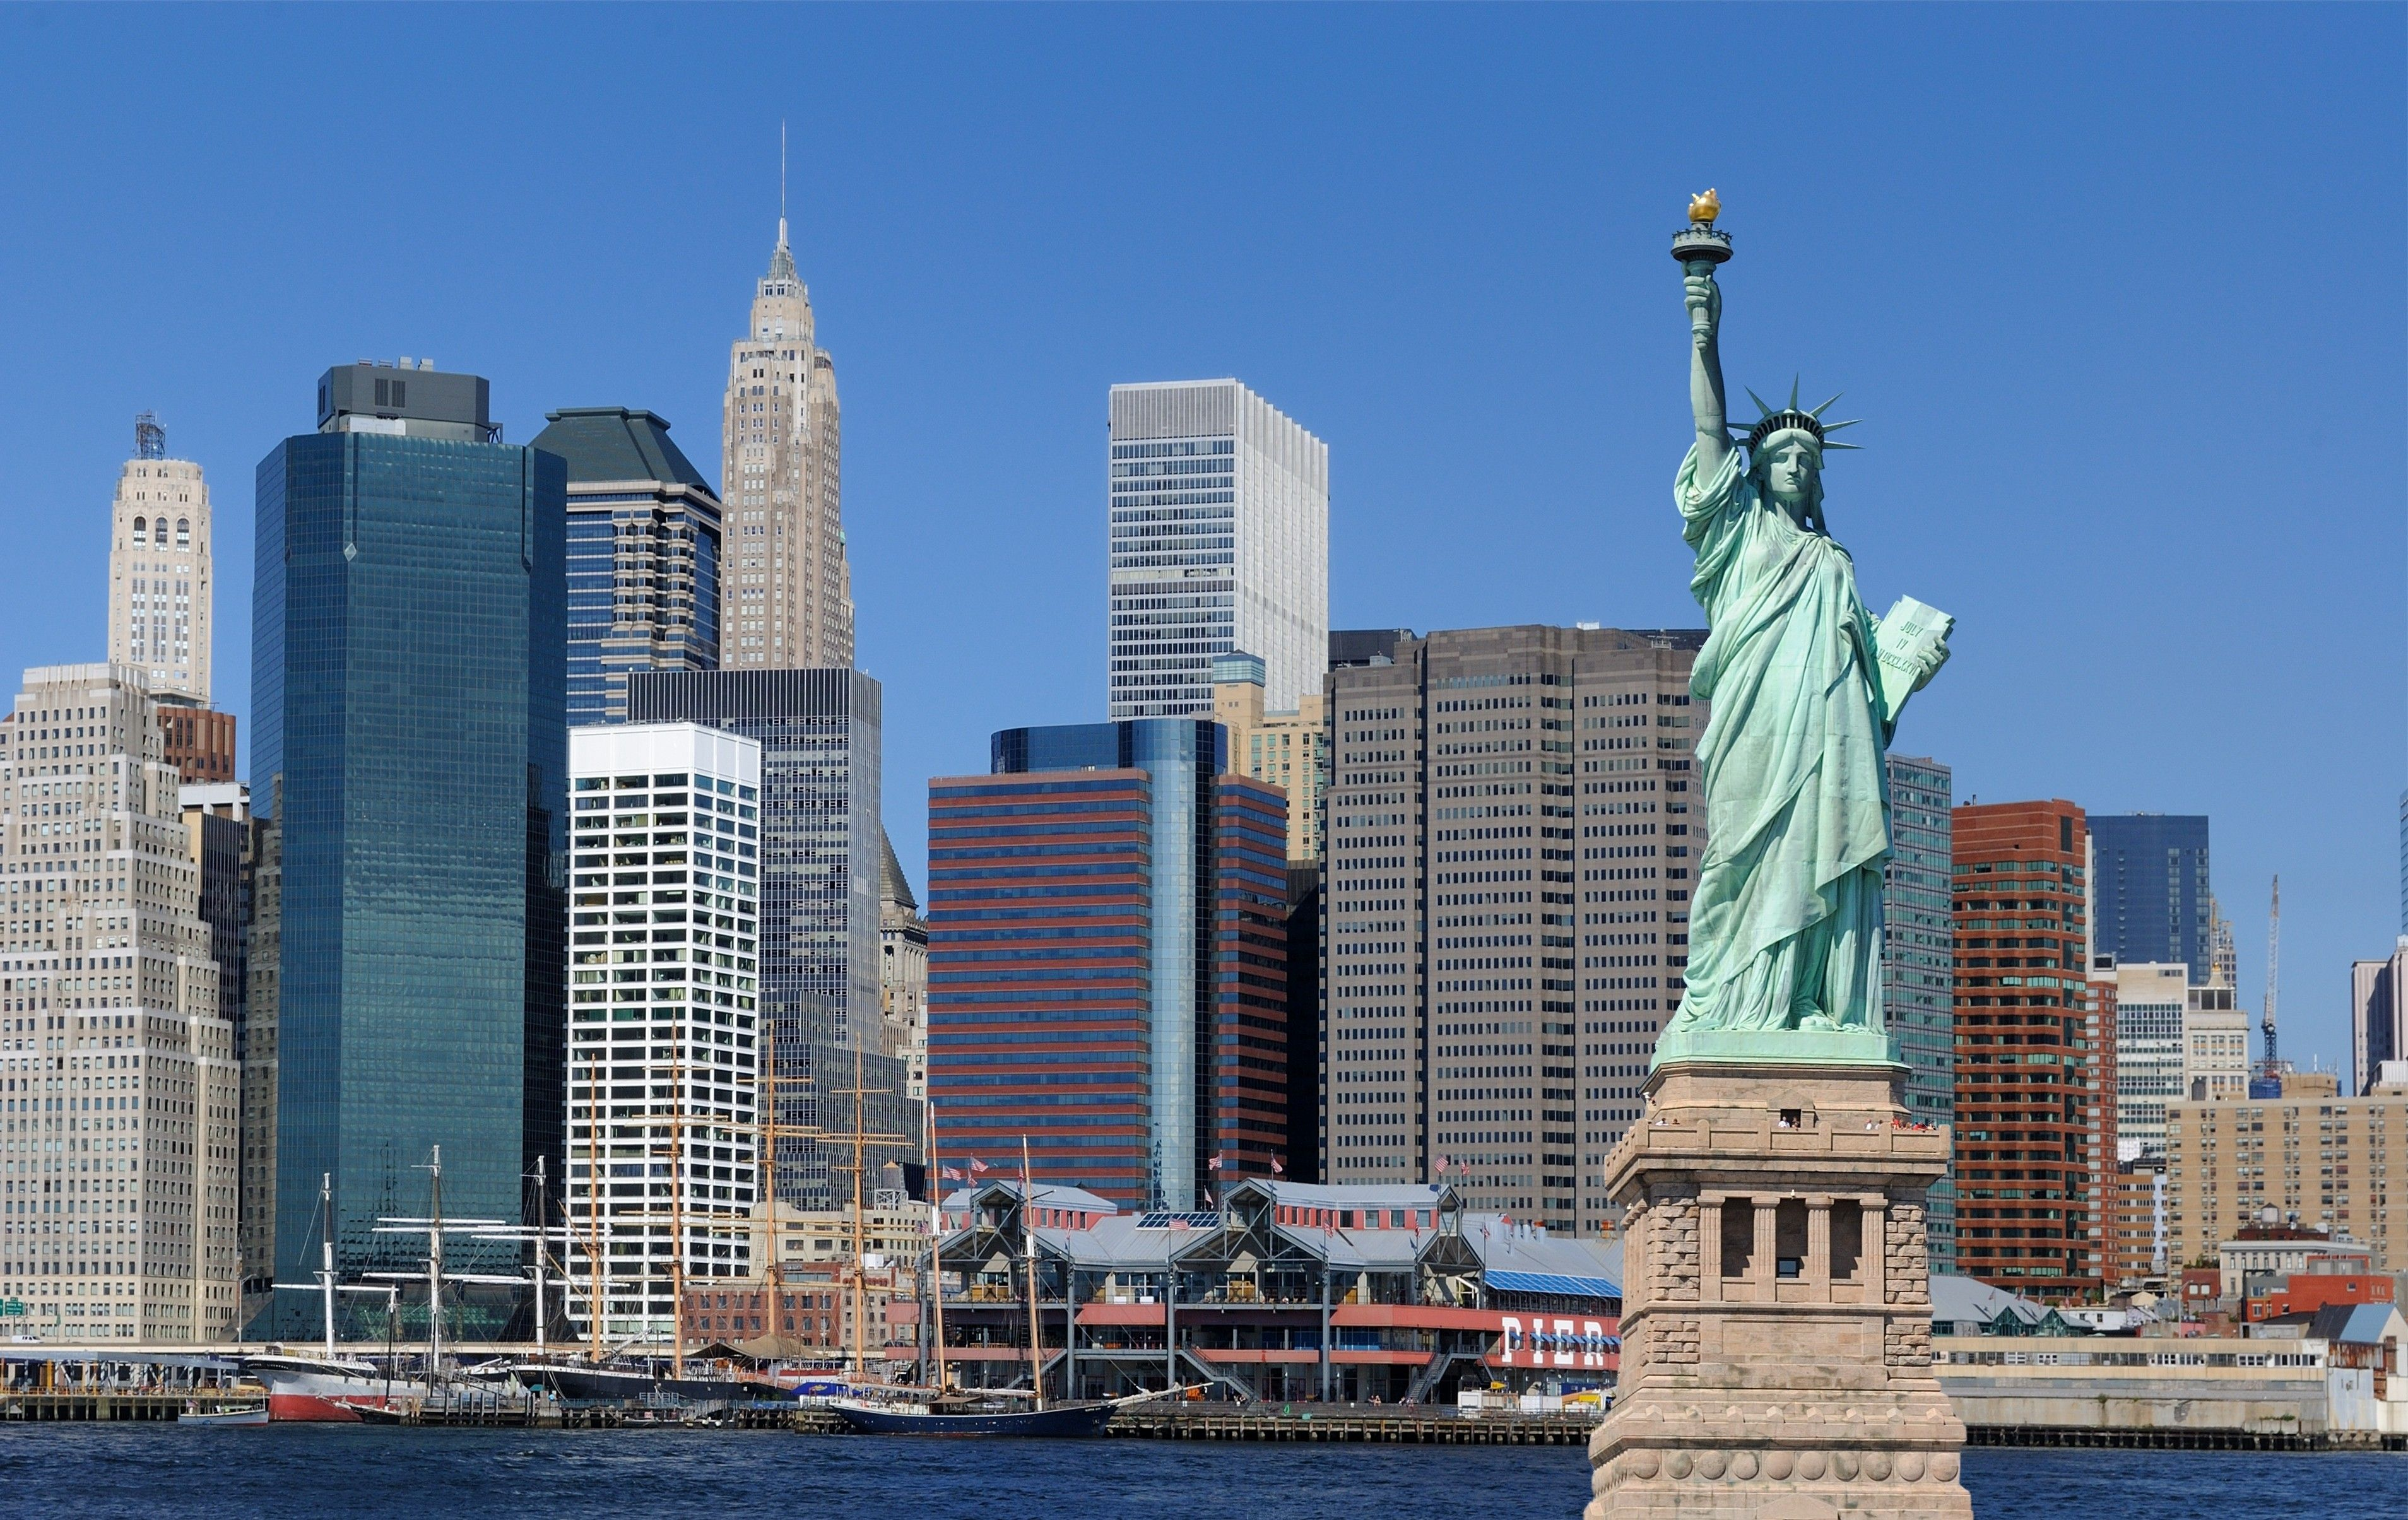 Statue Of Liberty Widescreen Hd Wallpapers Free Wallpapers